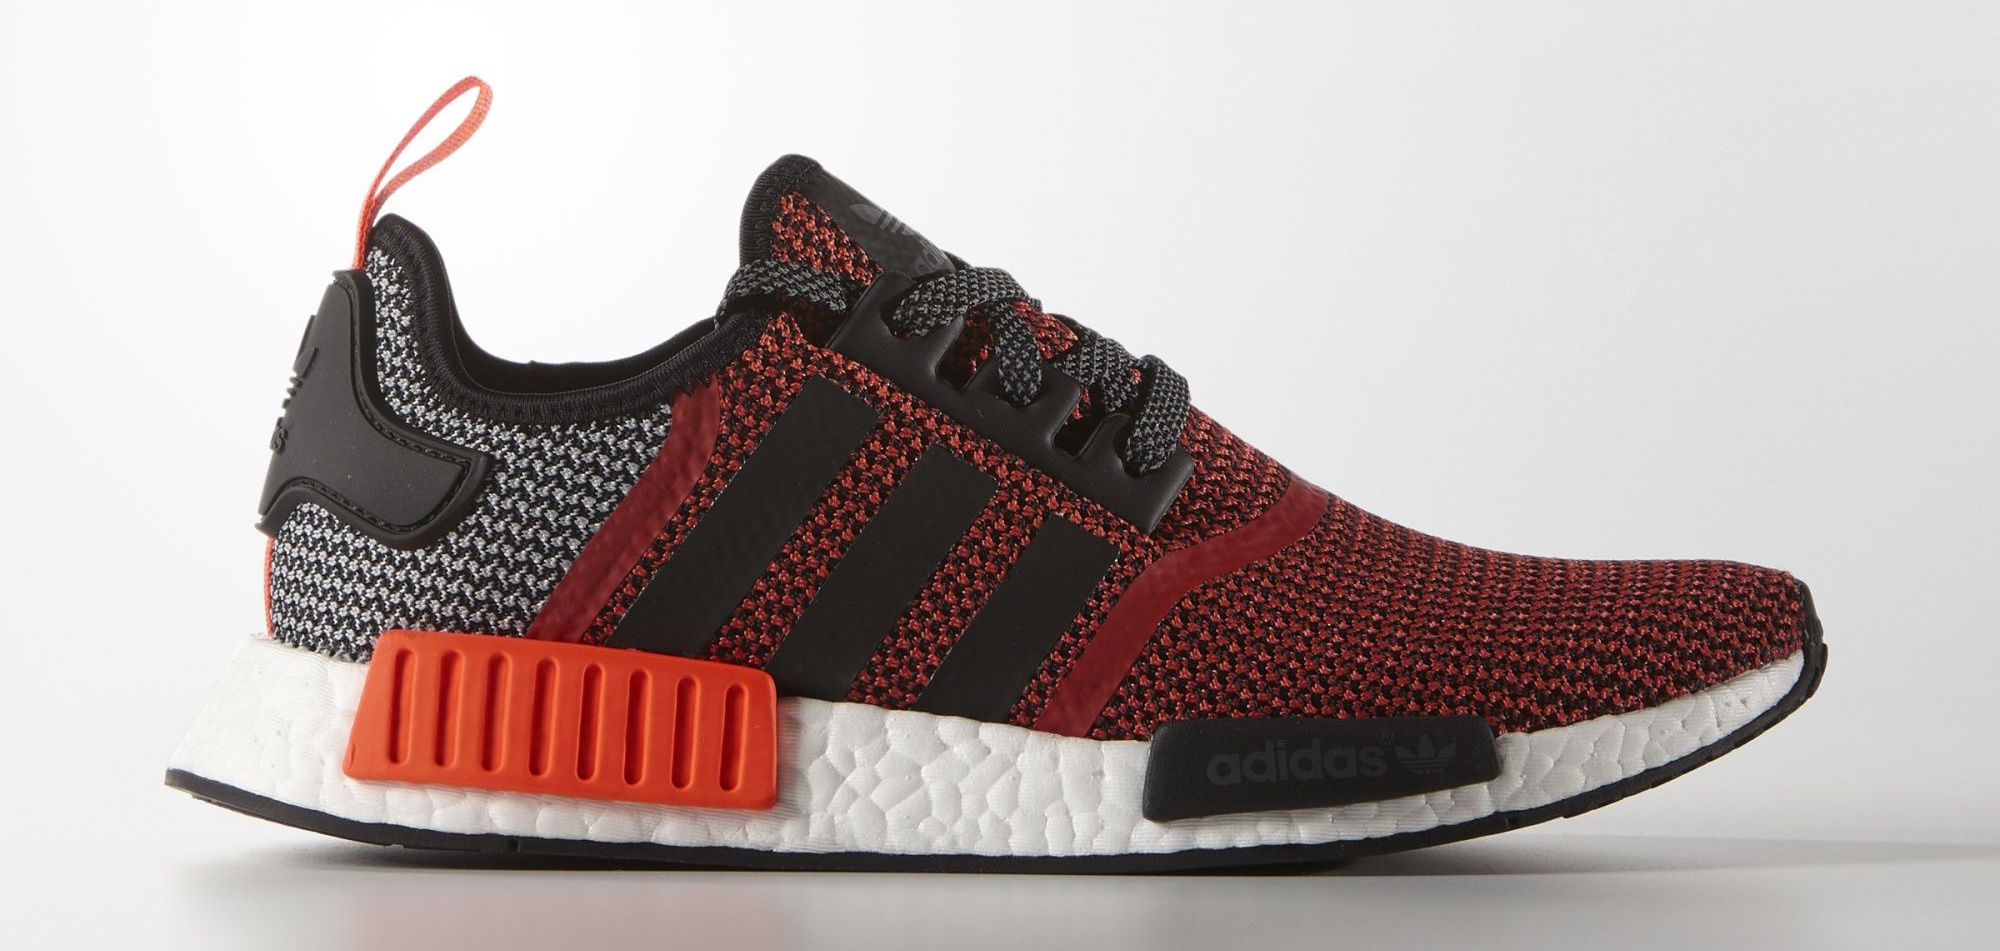 Adidas Nmd Runner Red